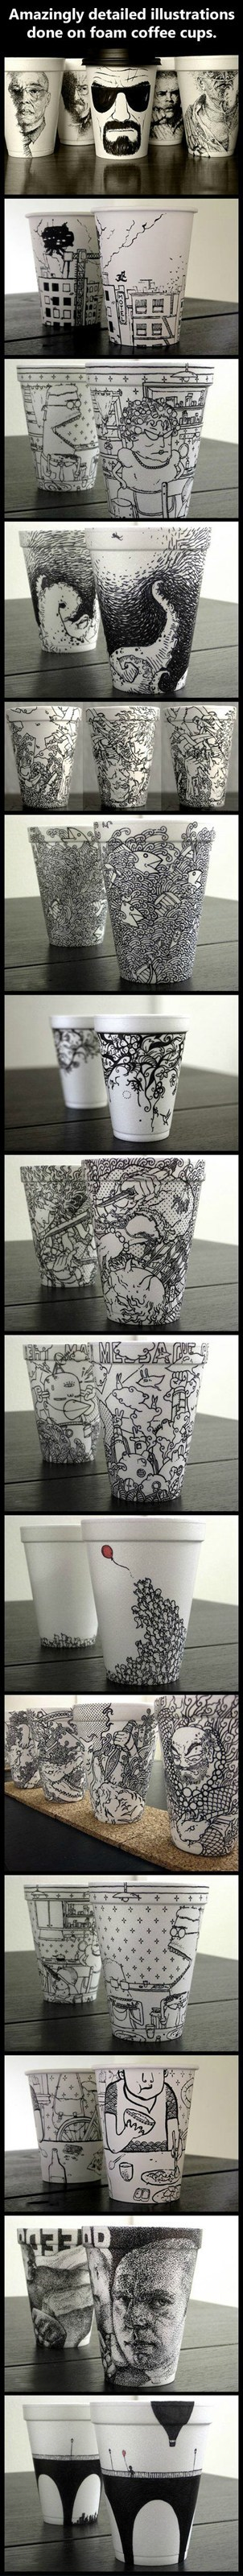 art barista coffee cup art - 7518543616